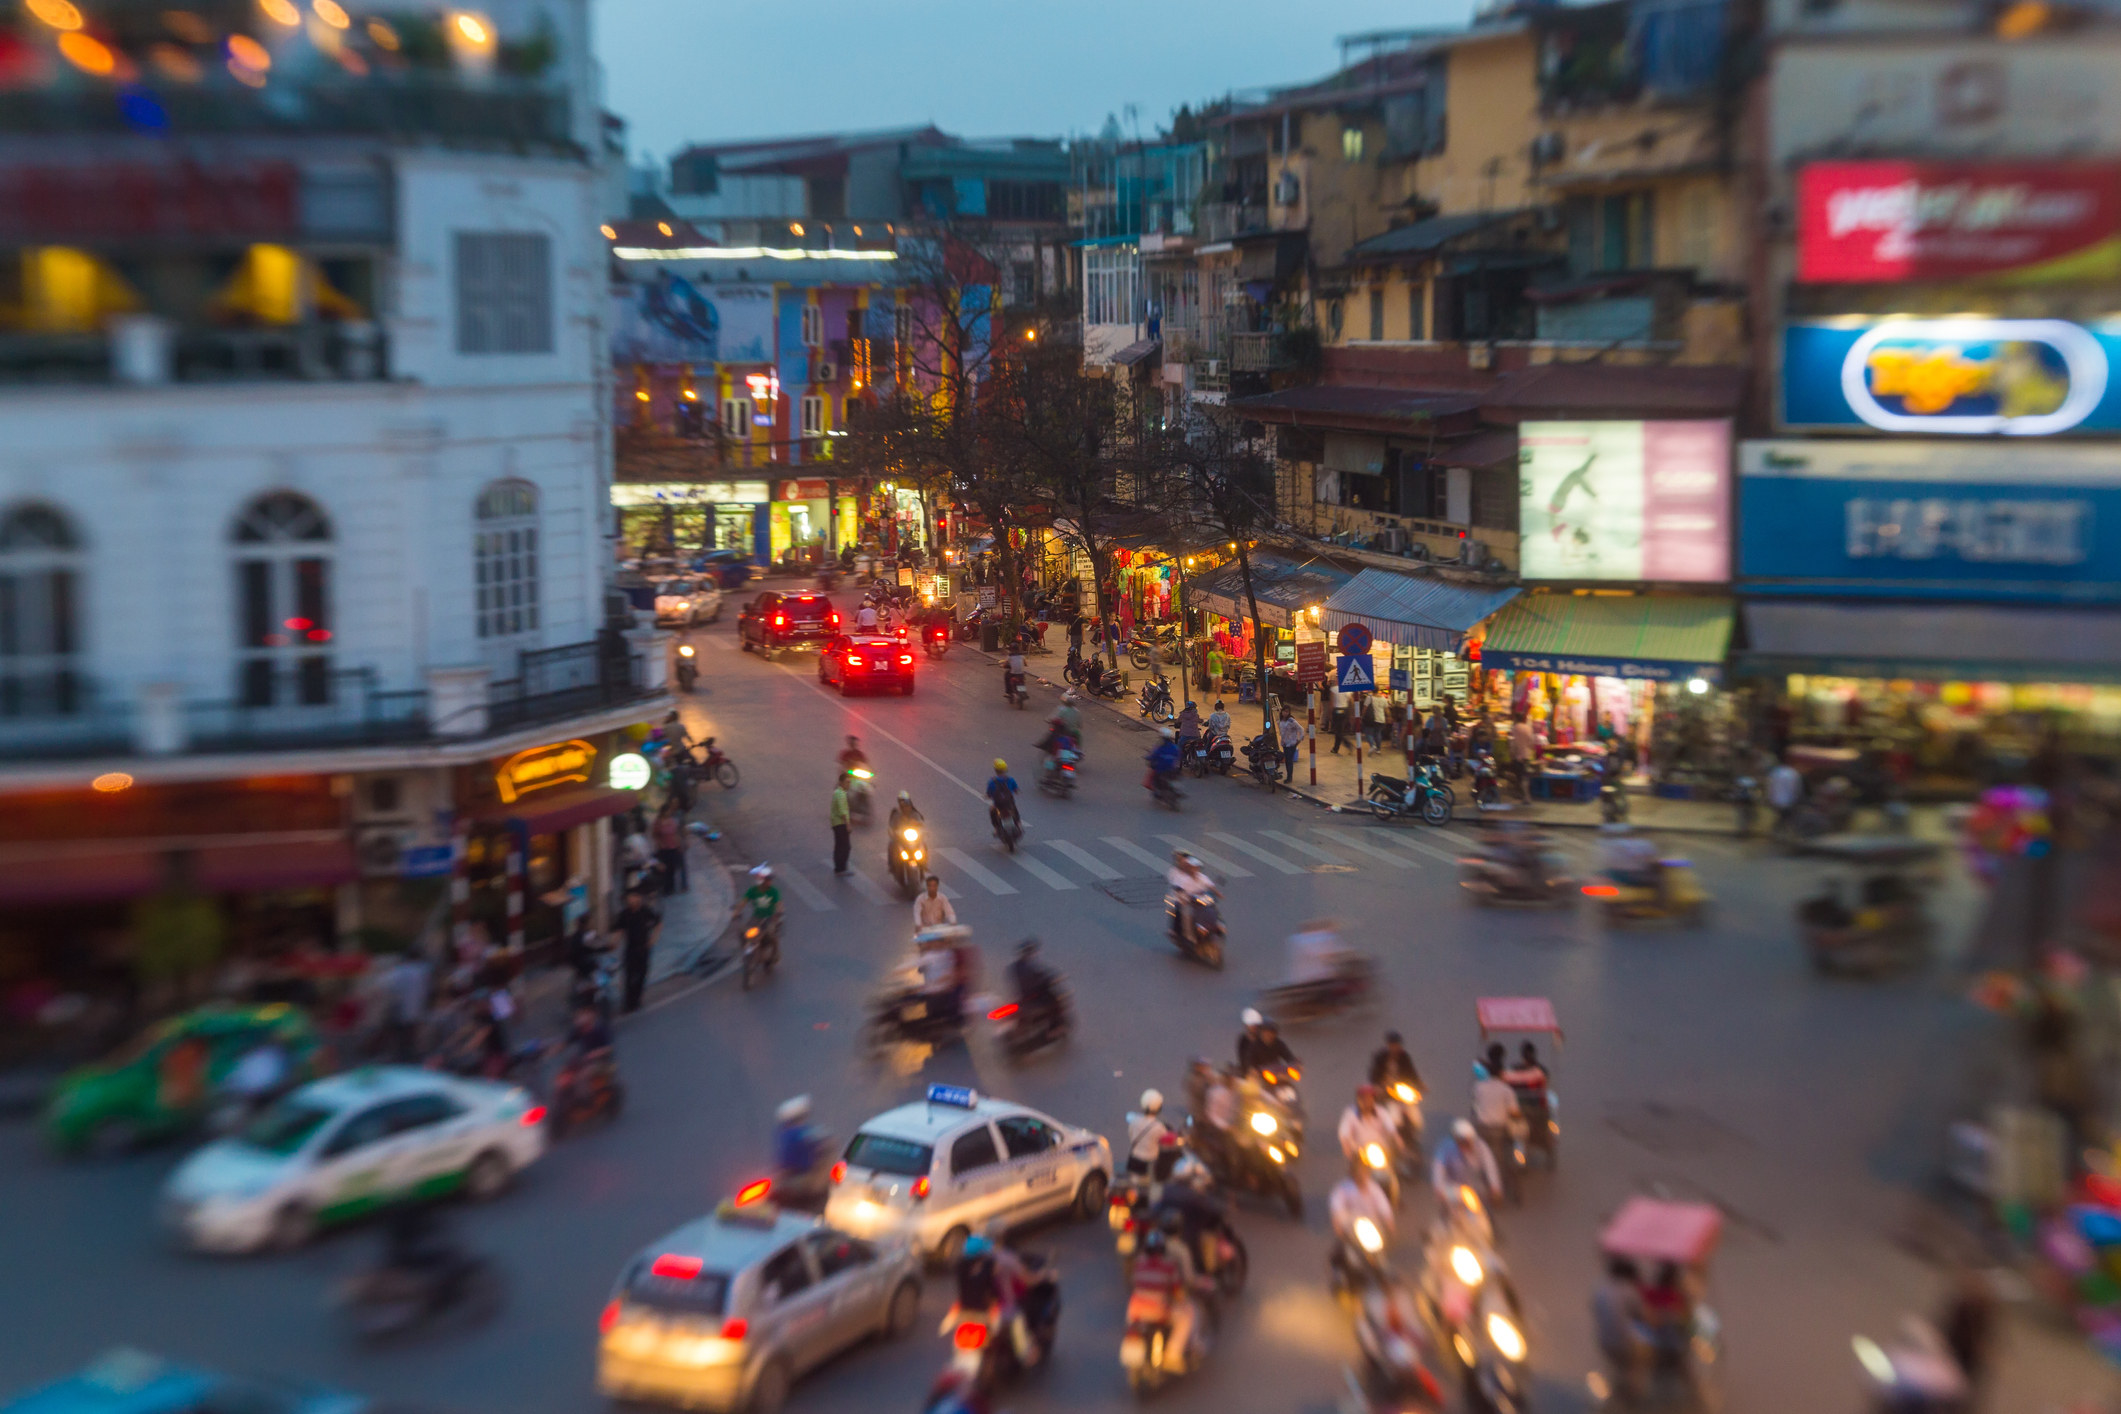 A busy intersection in Hanoi, Vietnam.